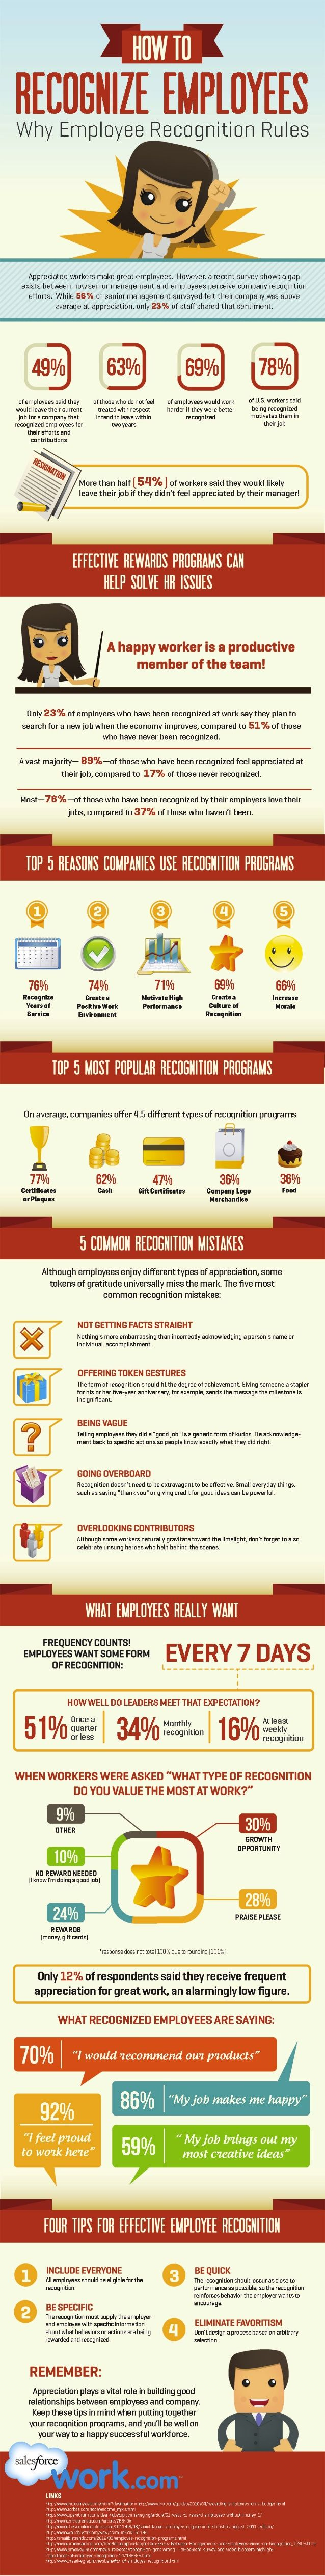 How to Recognize Employees [INFOGRAPHIC]